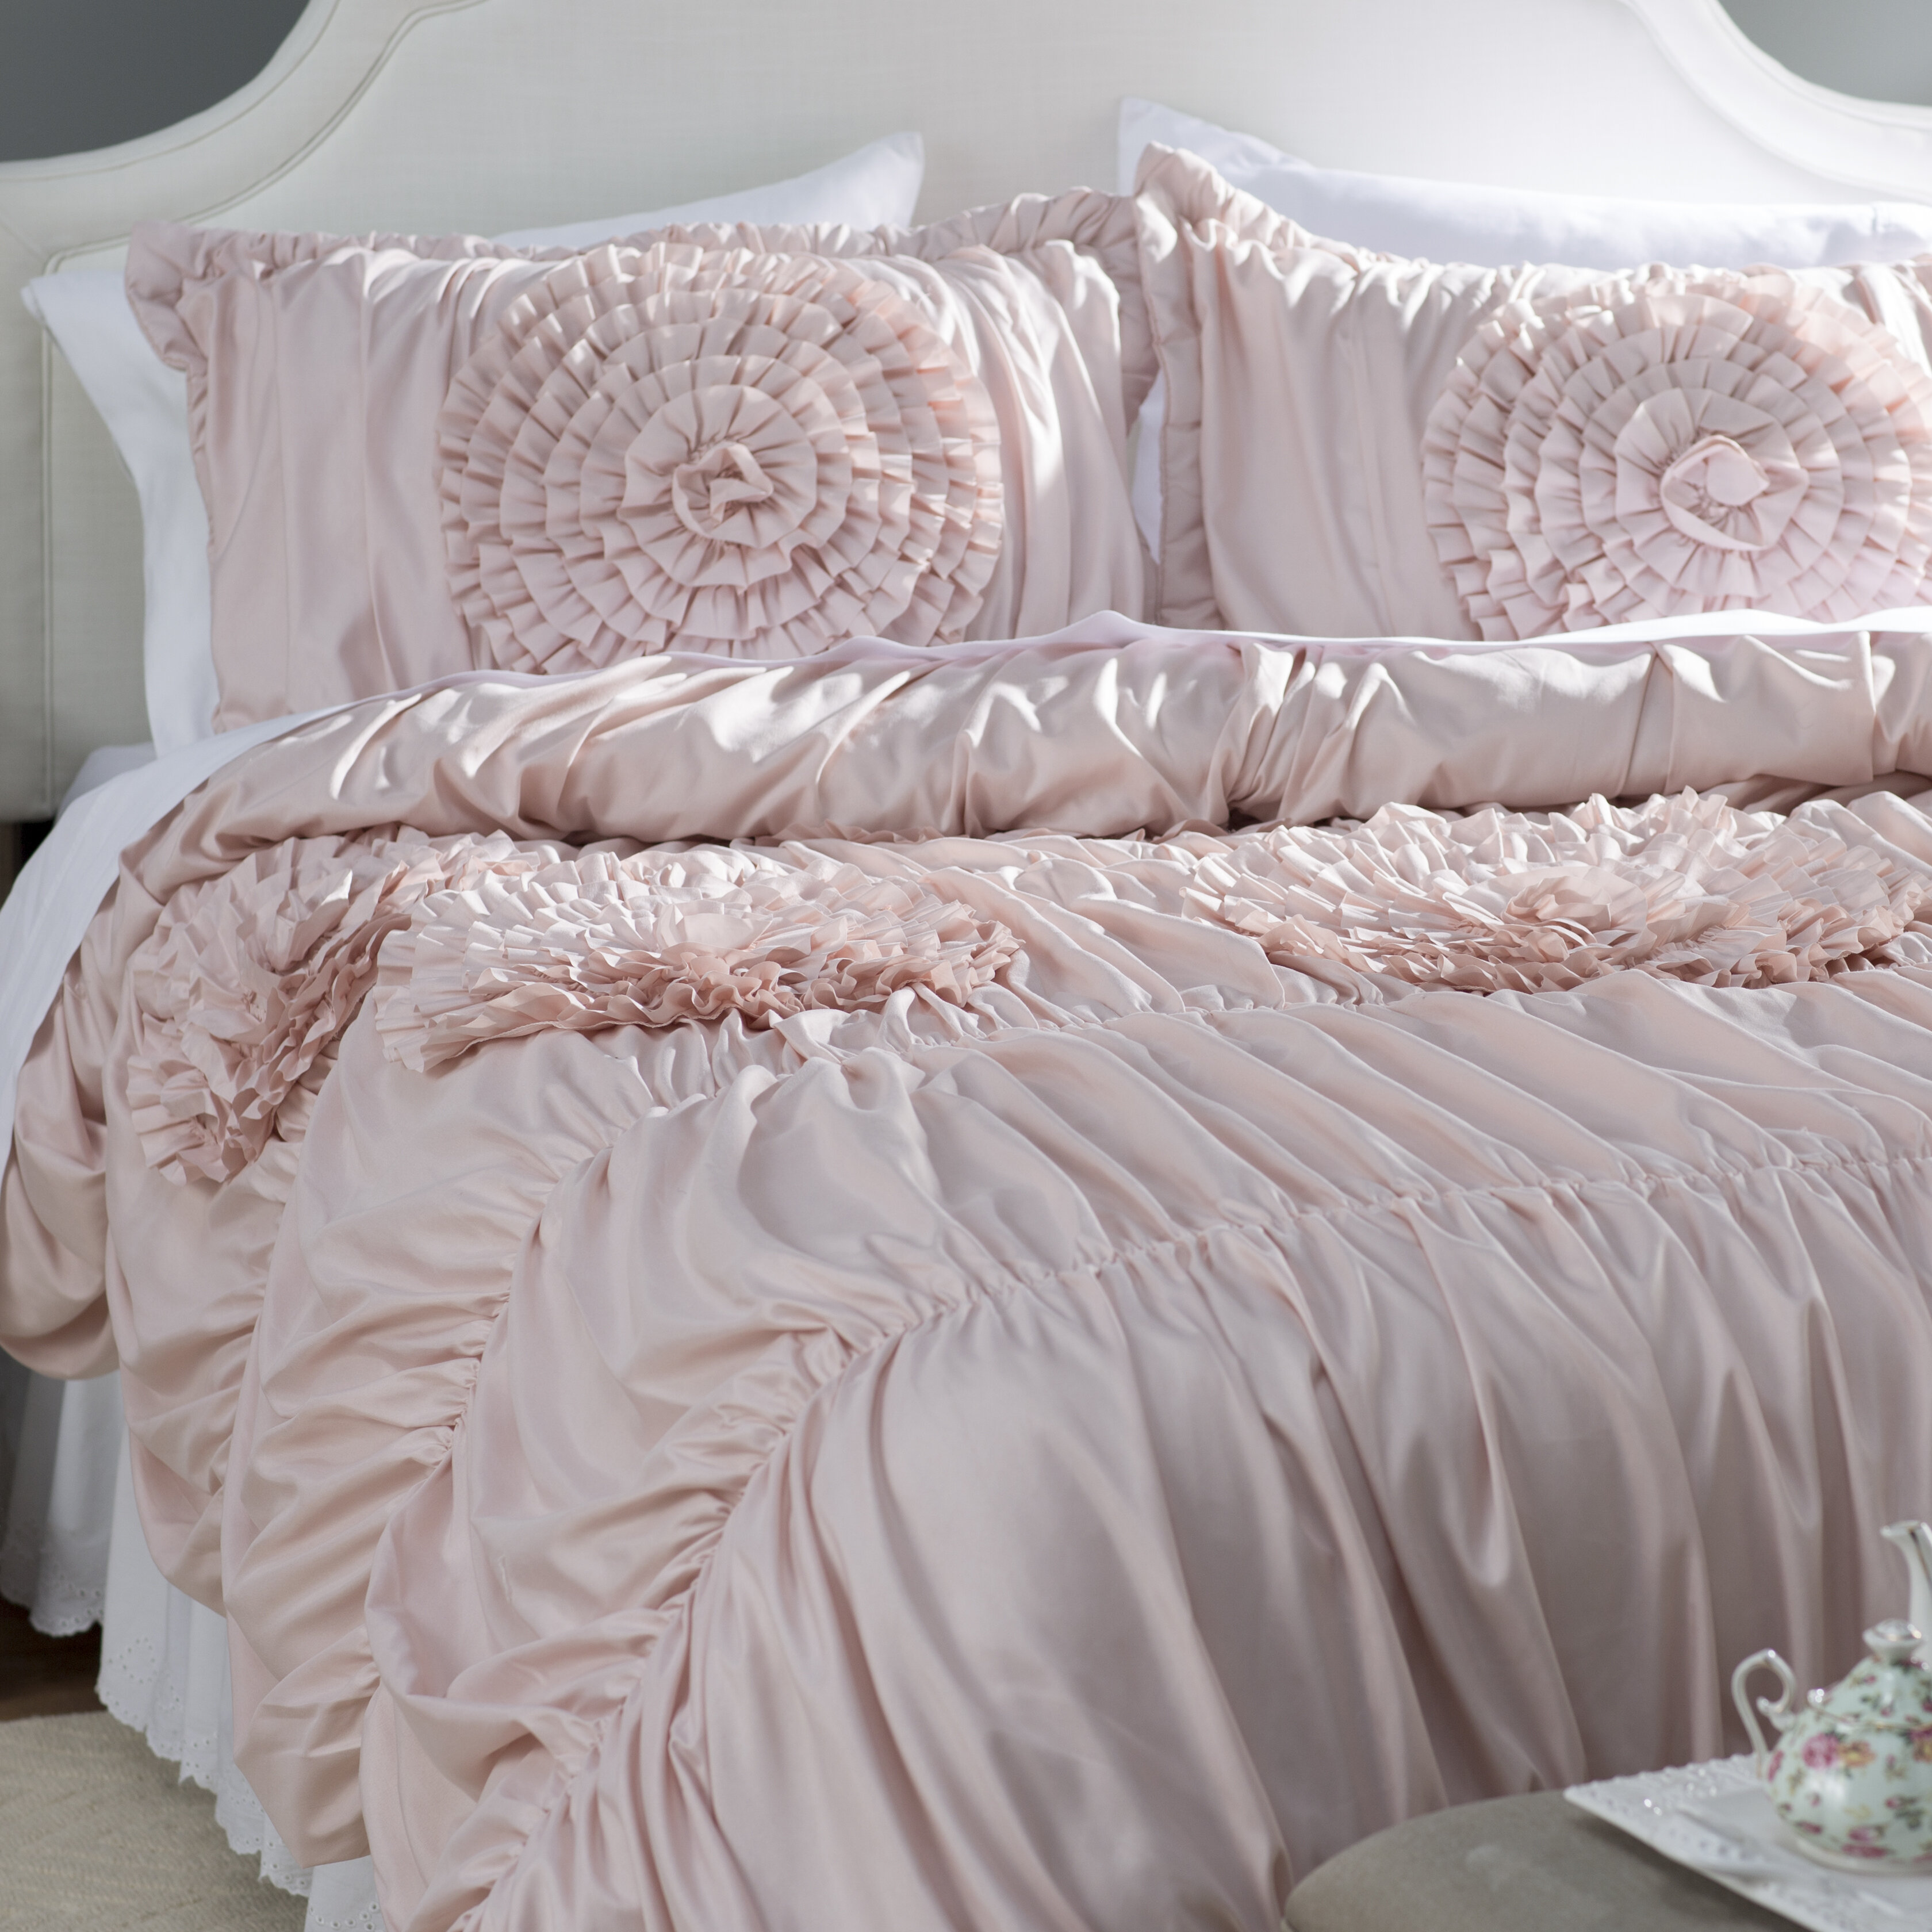 piece duvet covers embroidered with urban pintuck overstock free pink bedding set habitat today cover product bath detailing shipping callie